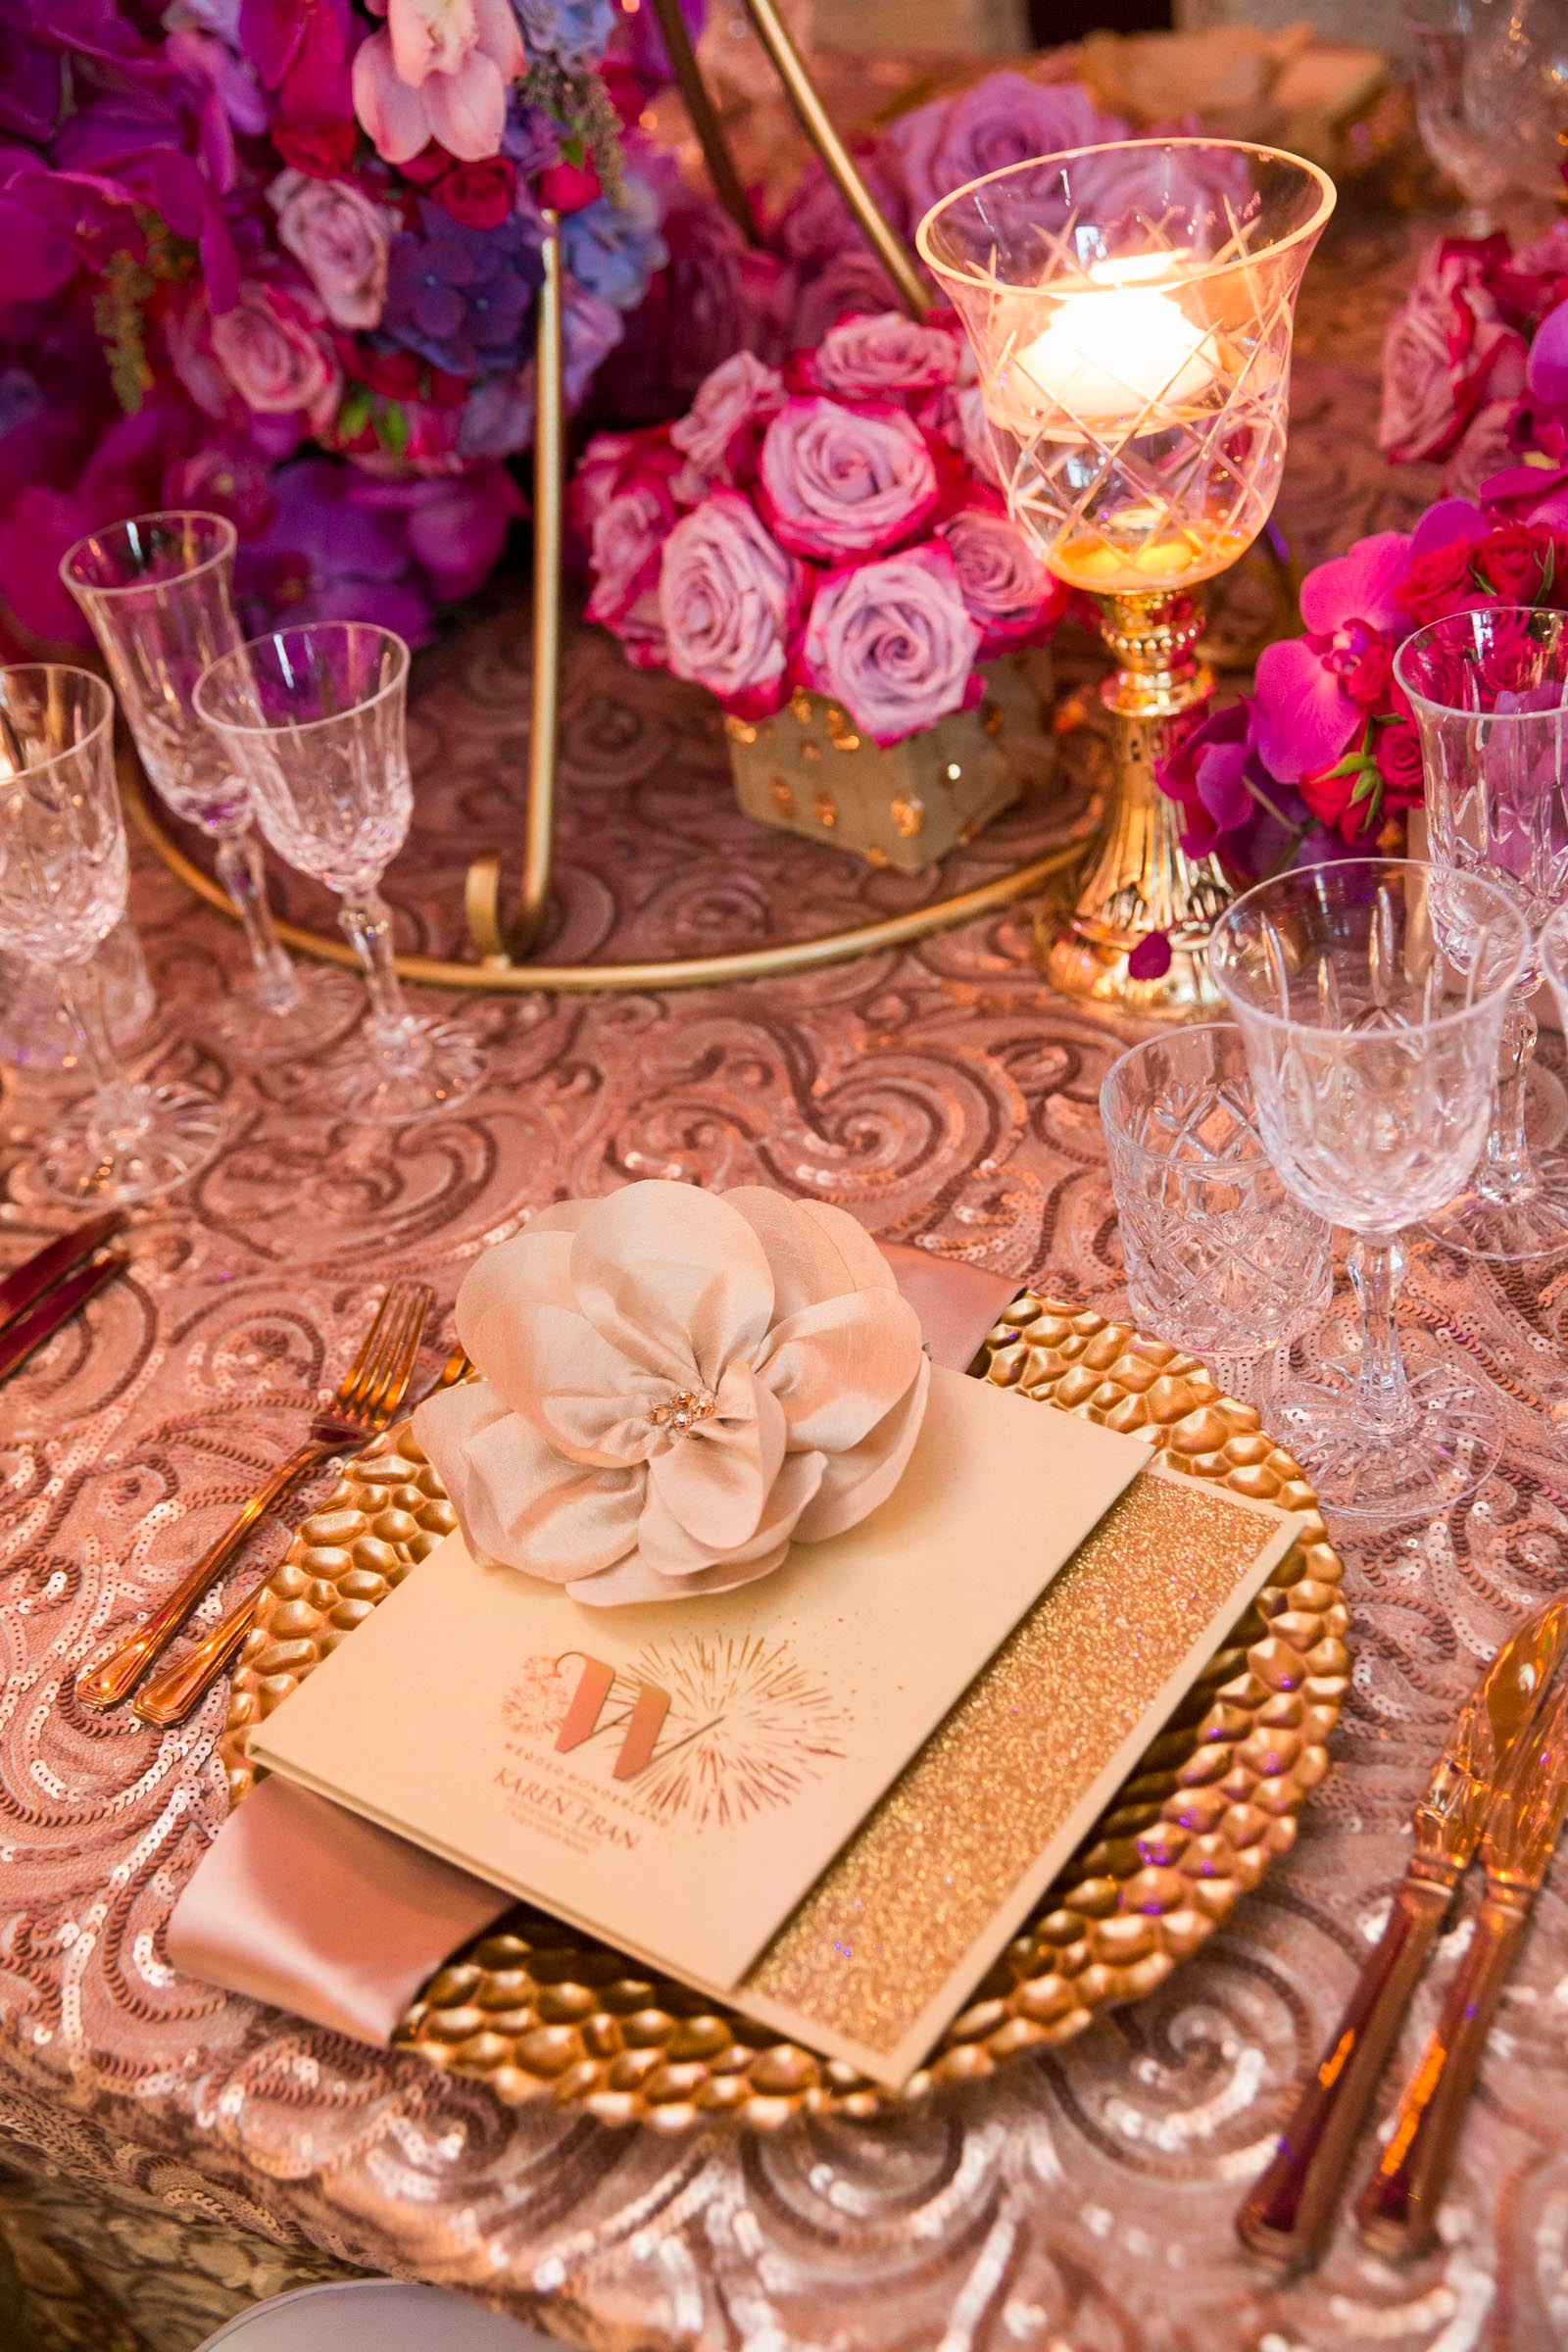 karen_tran_sydney_luxury_place_setting_charger+plate_linen_crystal.jpg